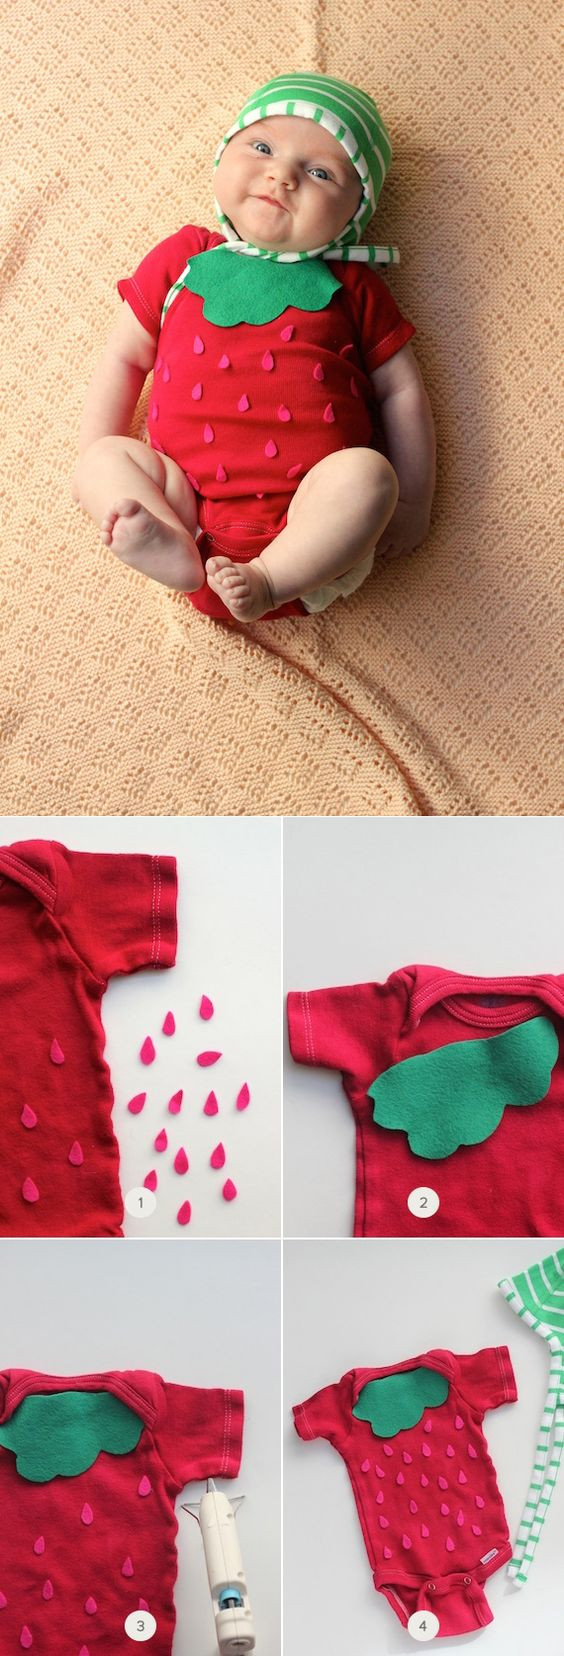 Best ideas about Baby First DIY . Save or Pin Baby first halloween Halloween costumes and First Now.